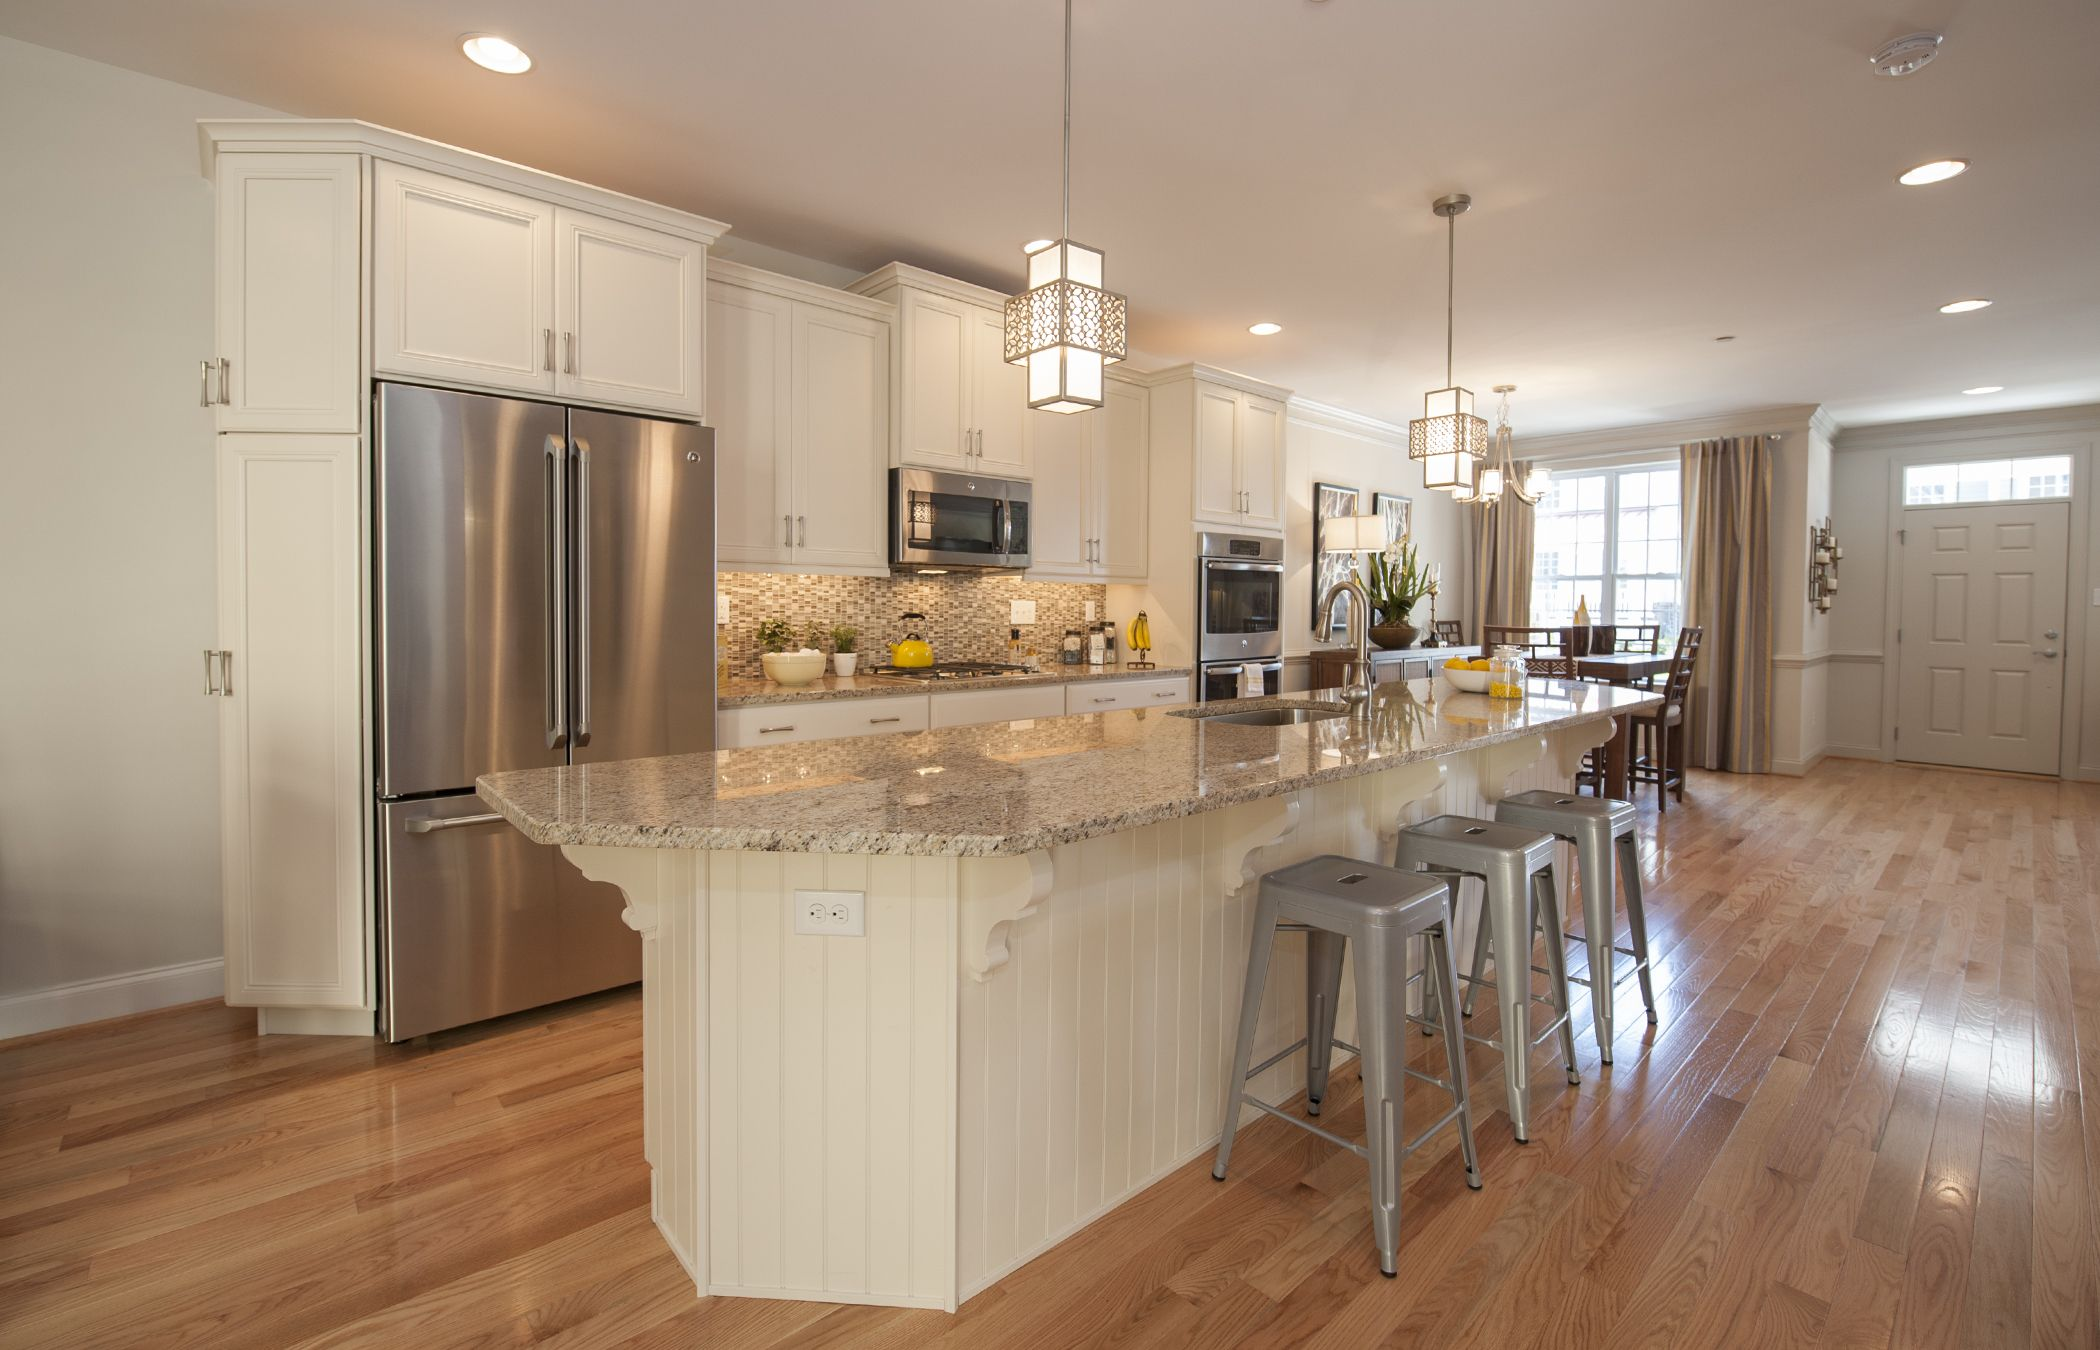 Townhomes In Malvern, Chester County Pa Pickering